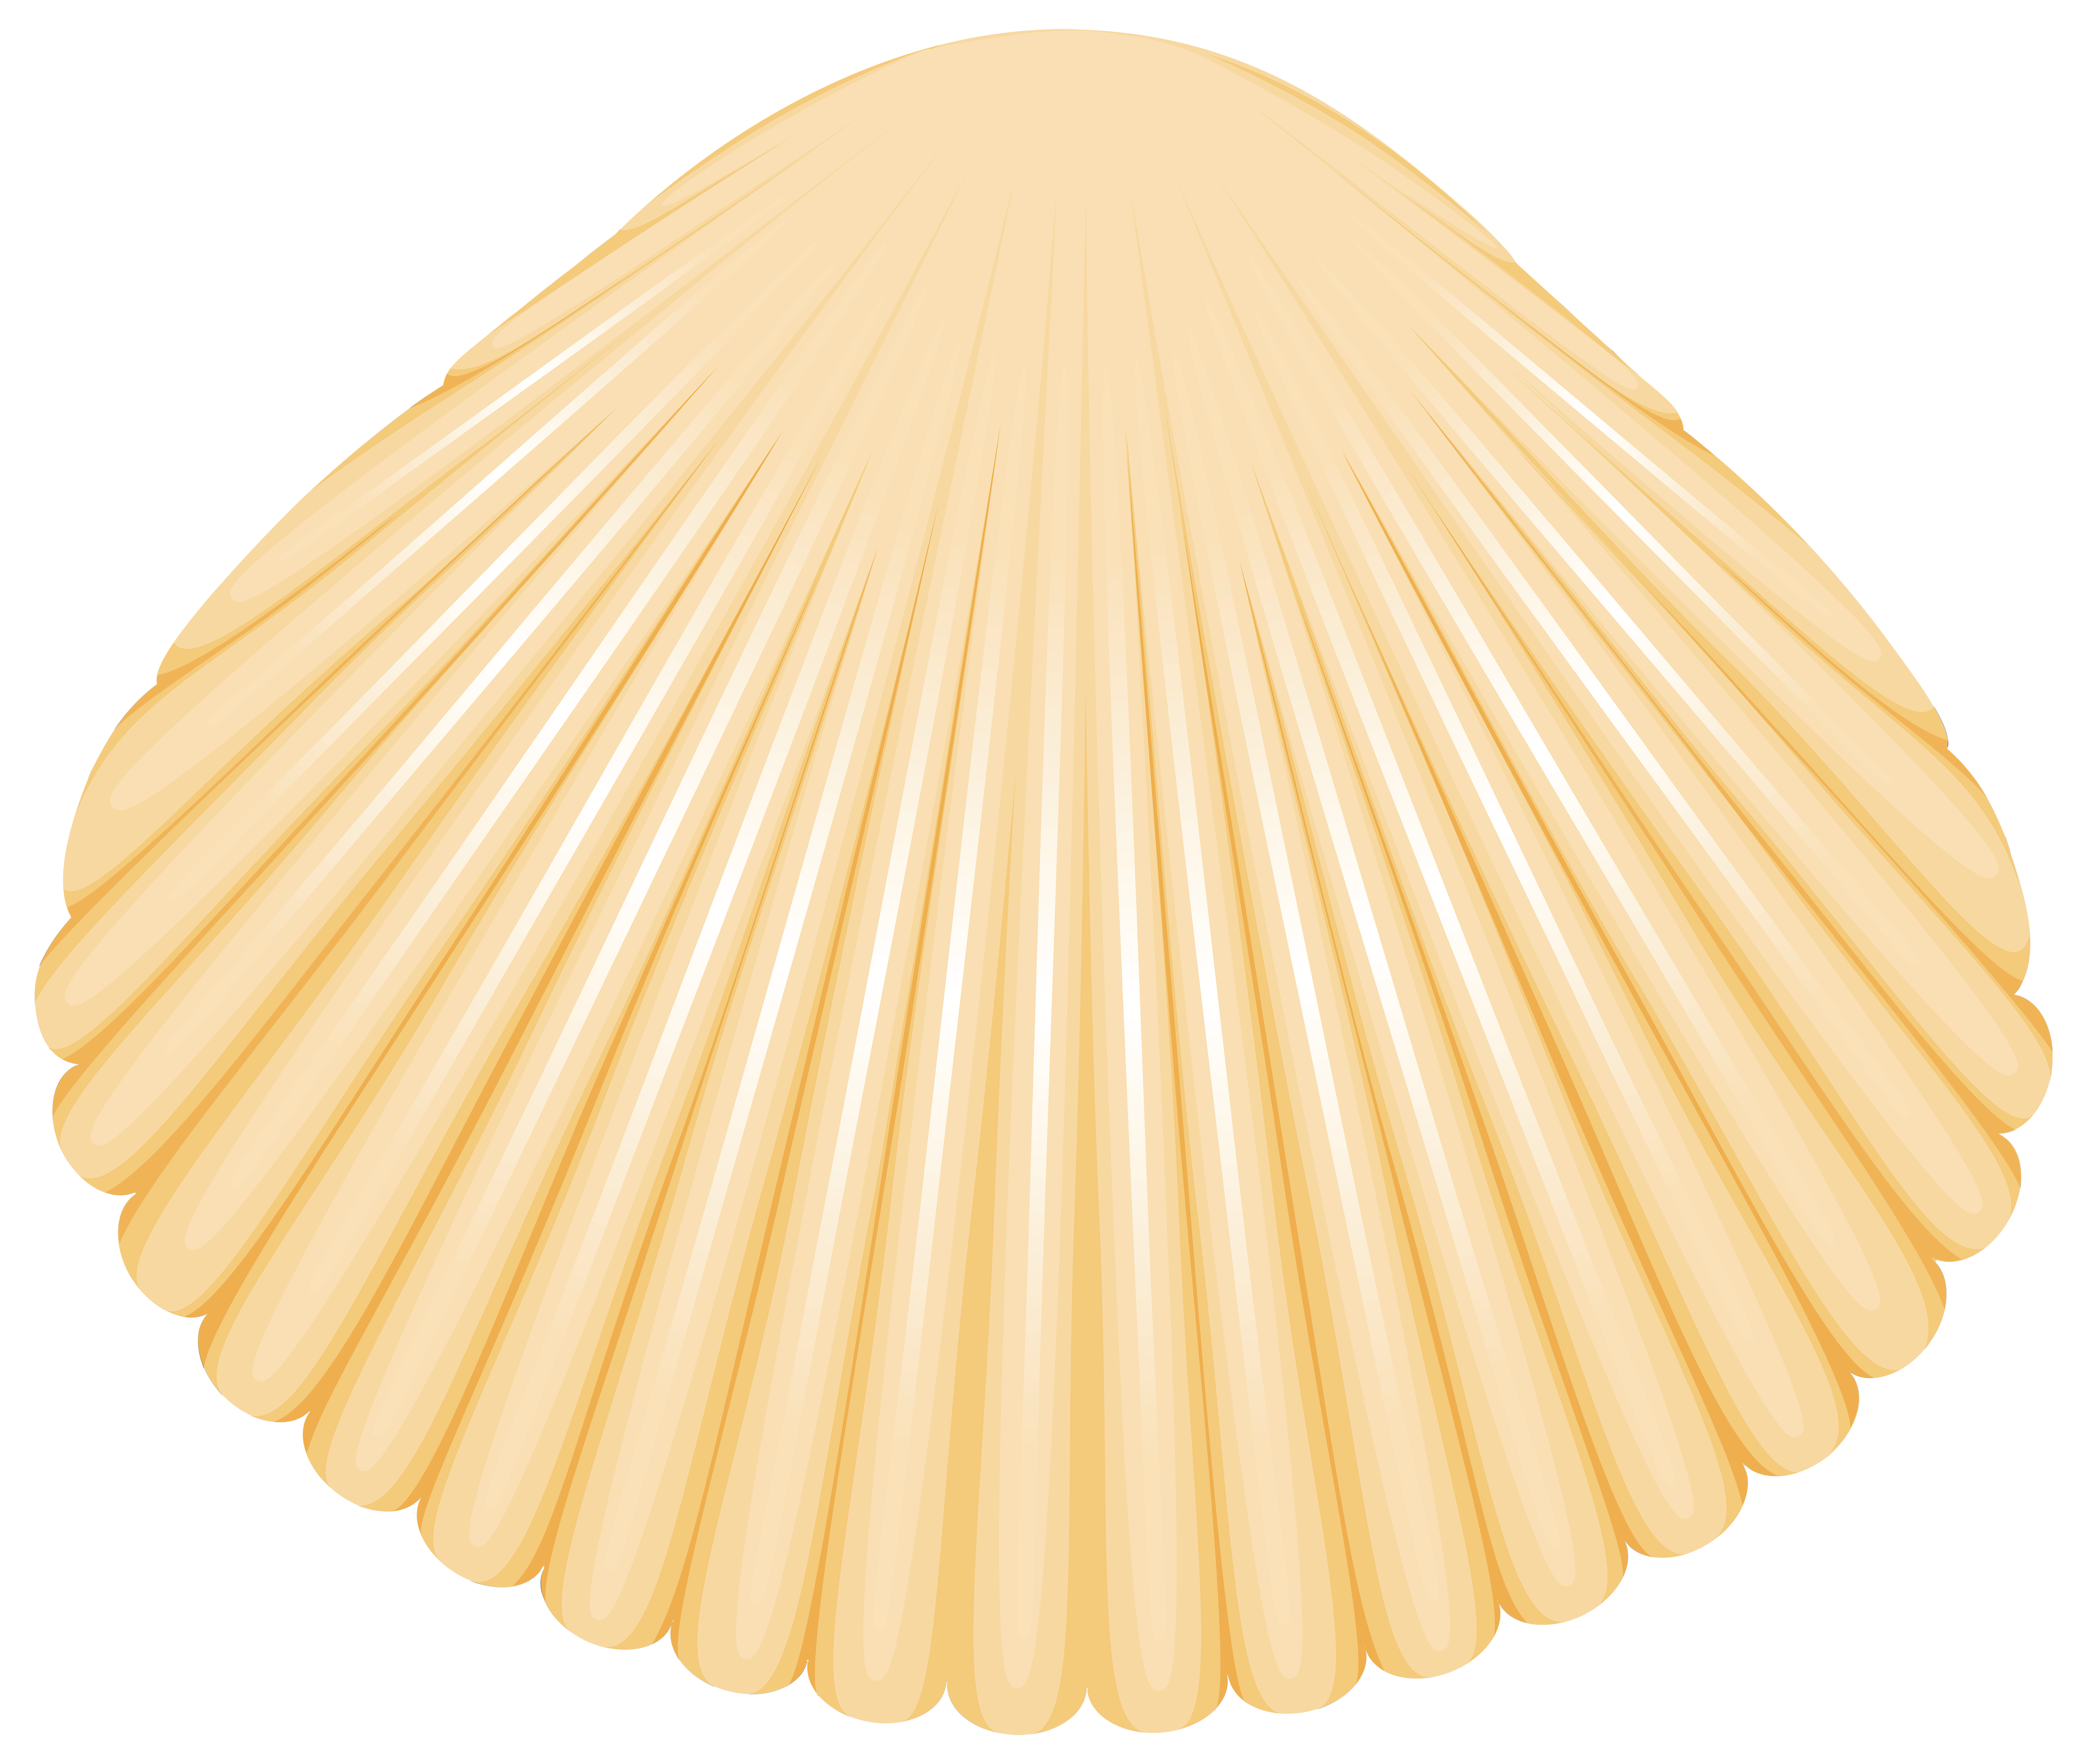 clipart black and white Clam clipart. Shell png clip art